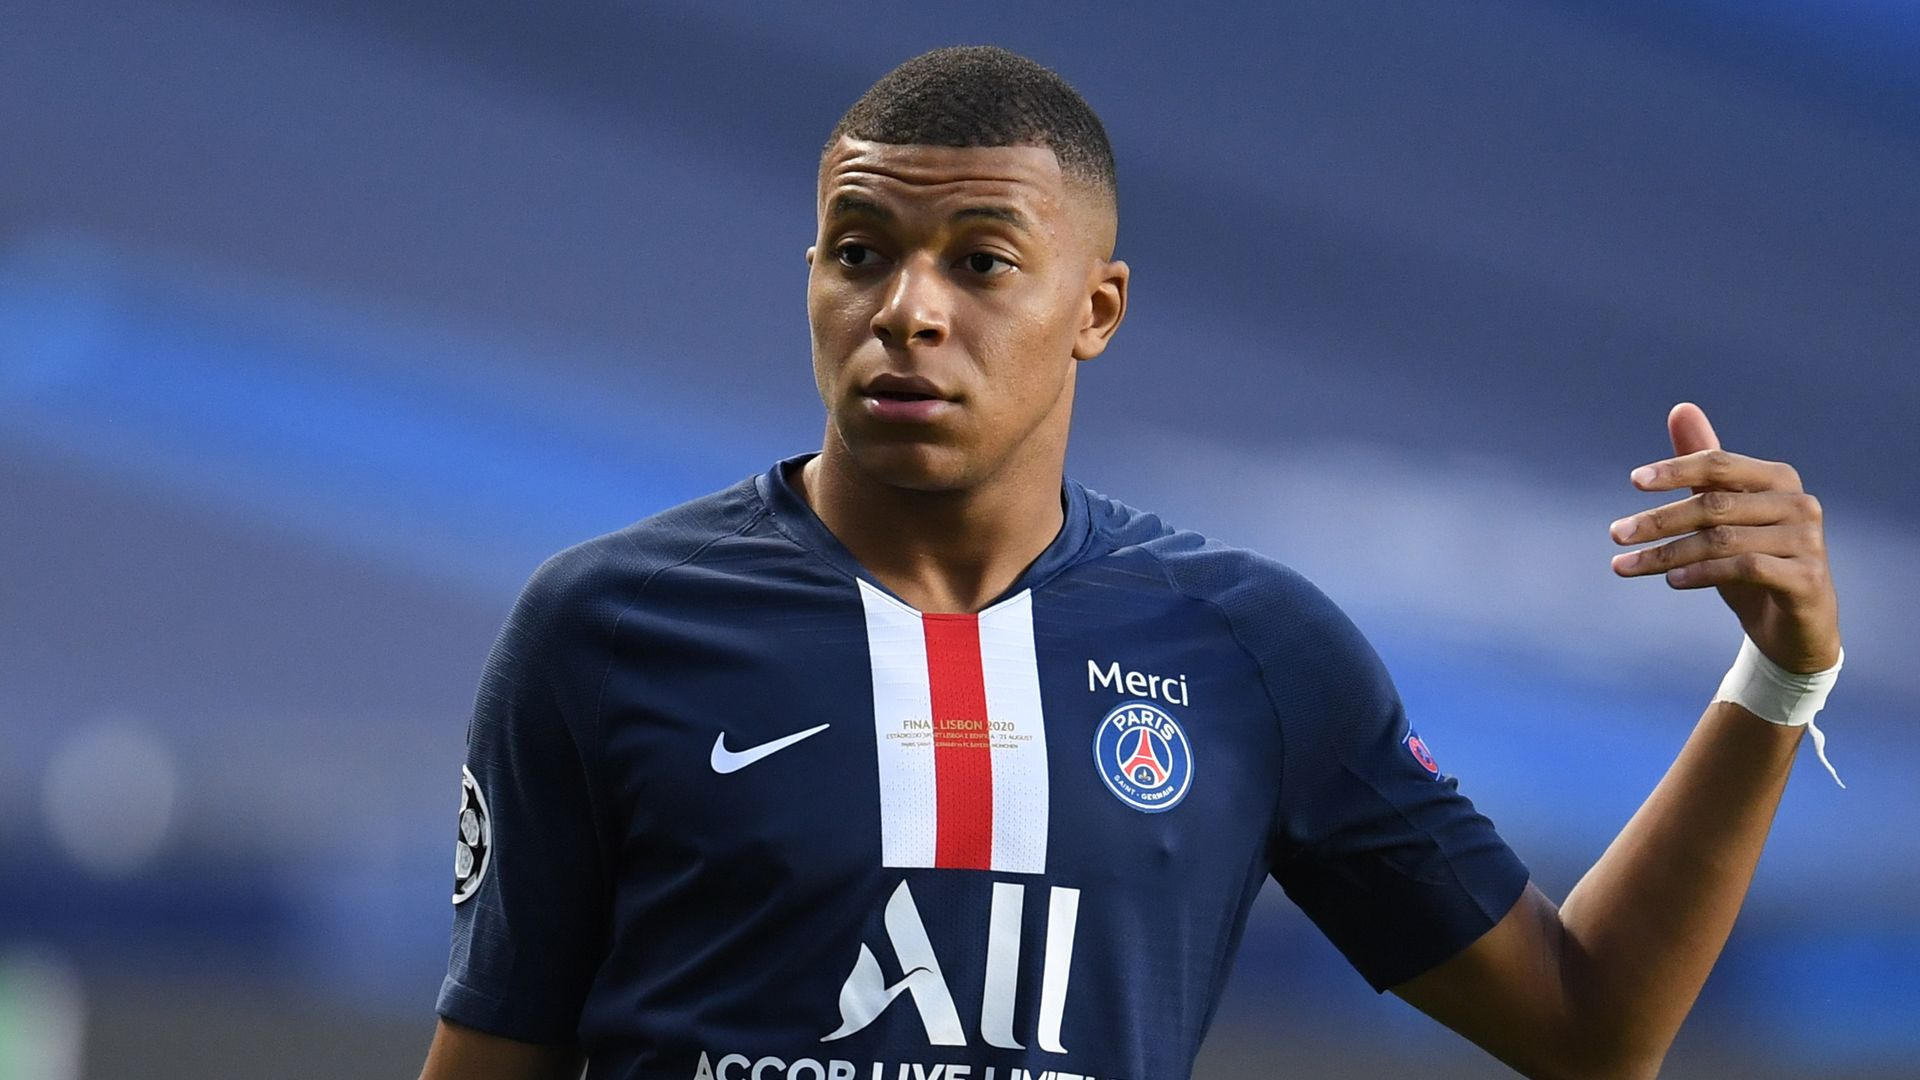 Mbappe out of France squad after positive COVID-19 test